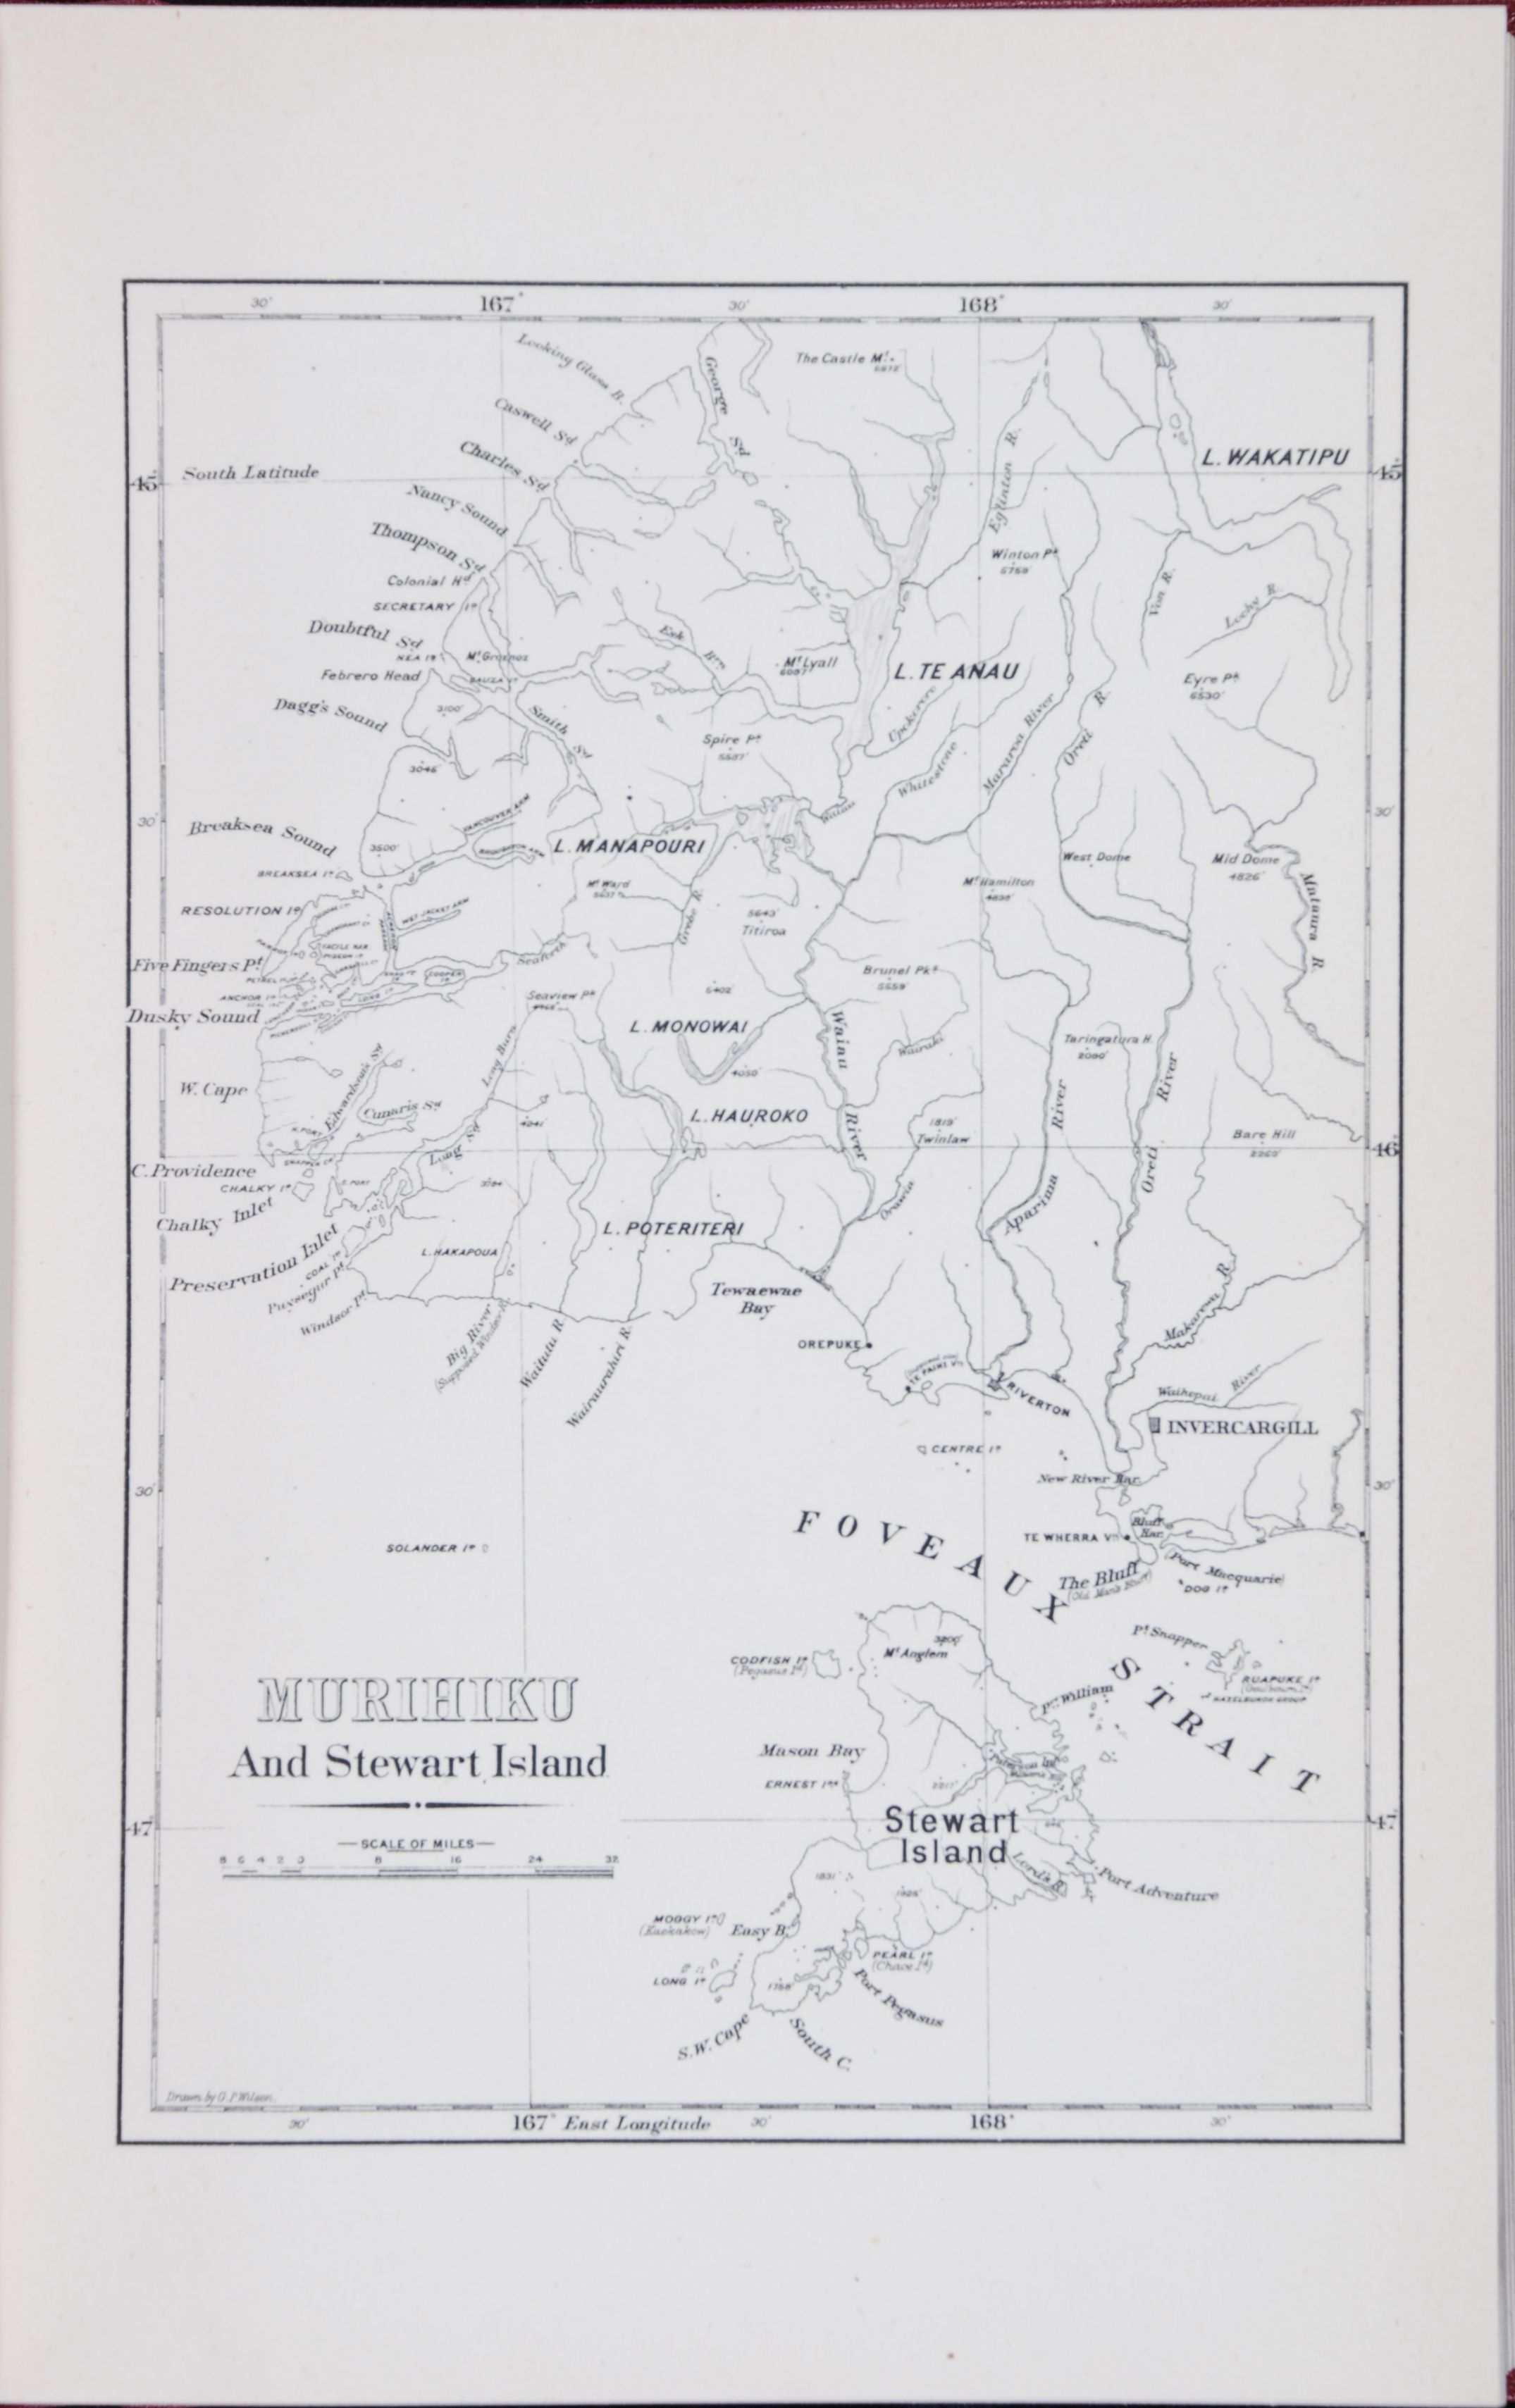 Robert McNab. Murihiku and the Southern Islands: a history of the West Coast Sounds, Foveaux Strait, Stewart Island, the Snares, Bounty, Antipodes, Auckland, Campbell and Macquarie Islands, from 1770 to 1829.  Invercargill: William Smith, 1907.